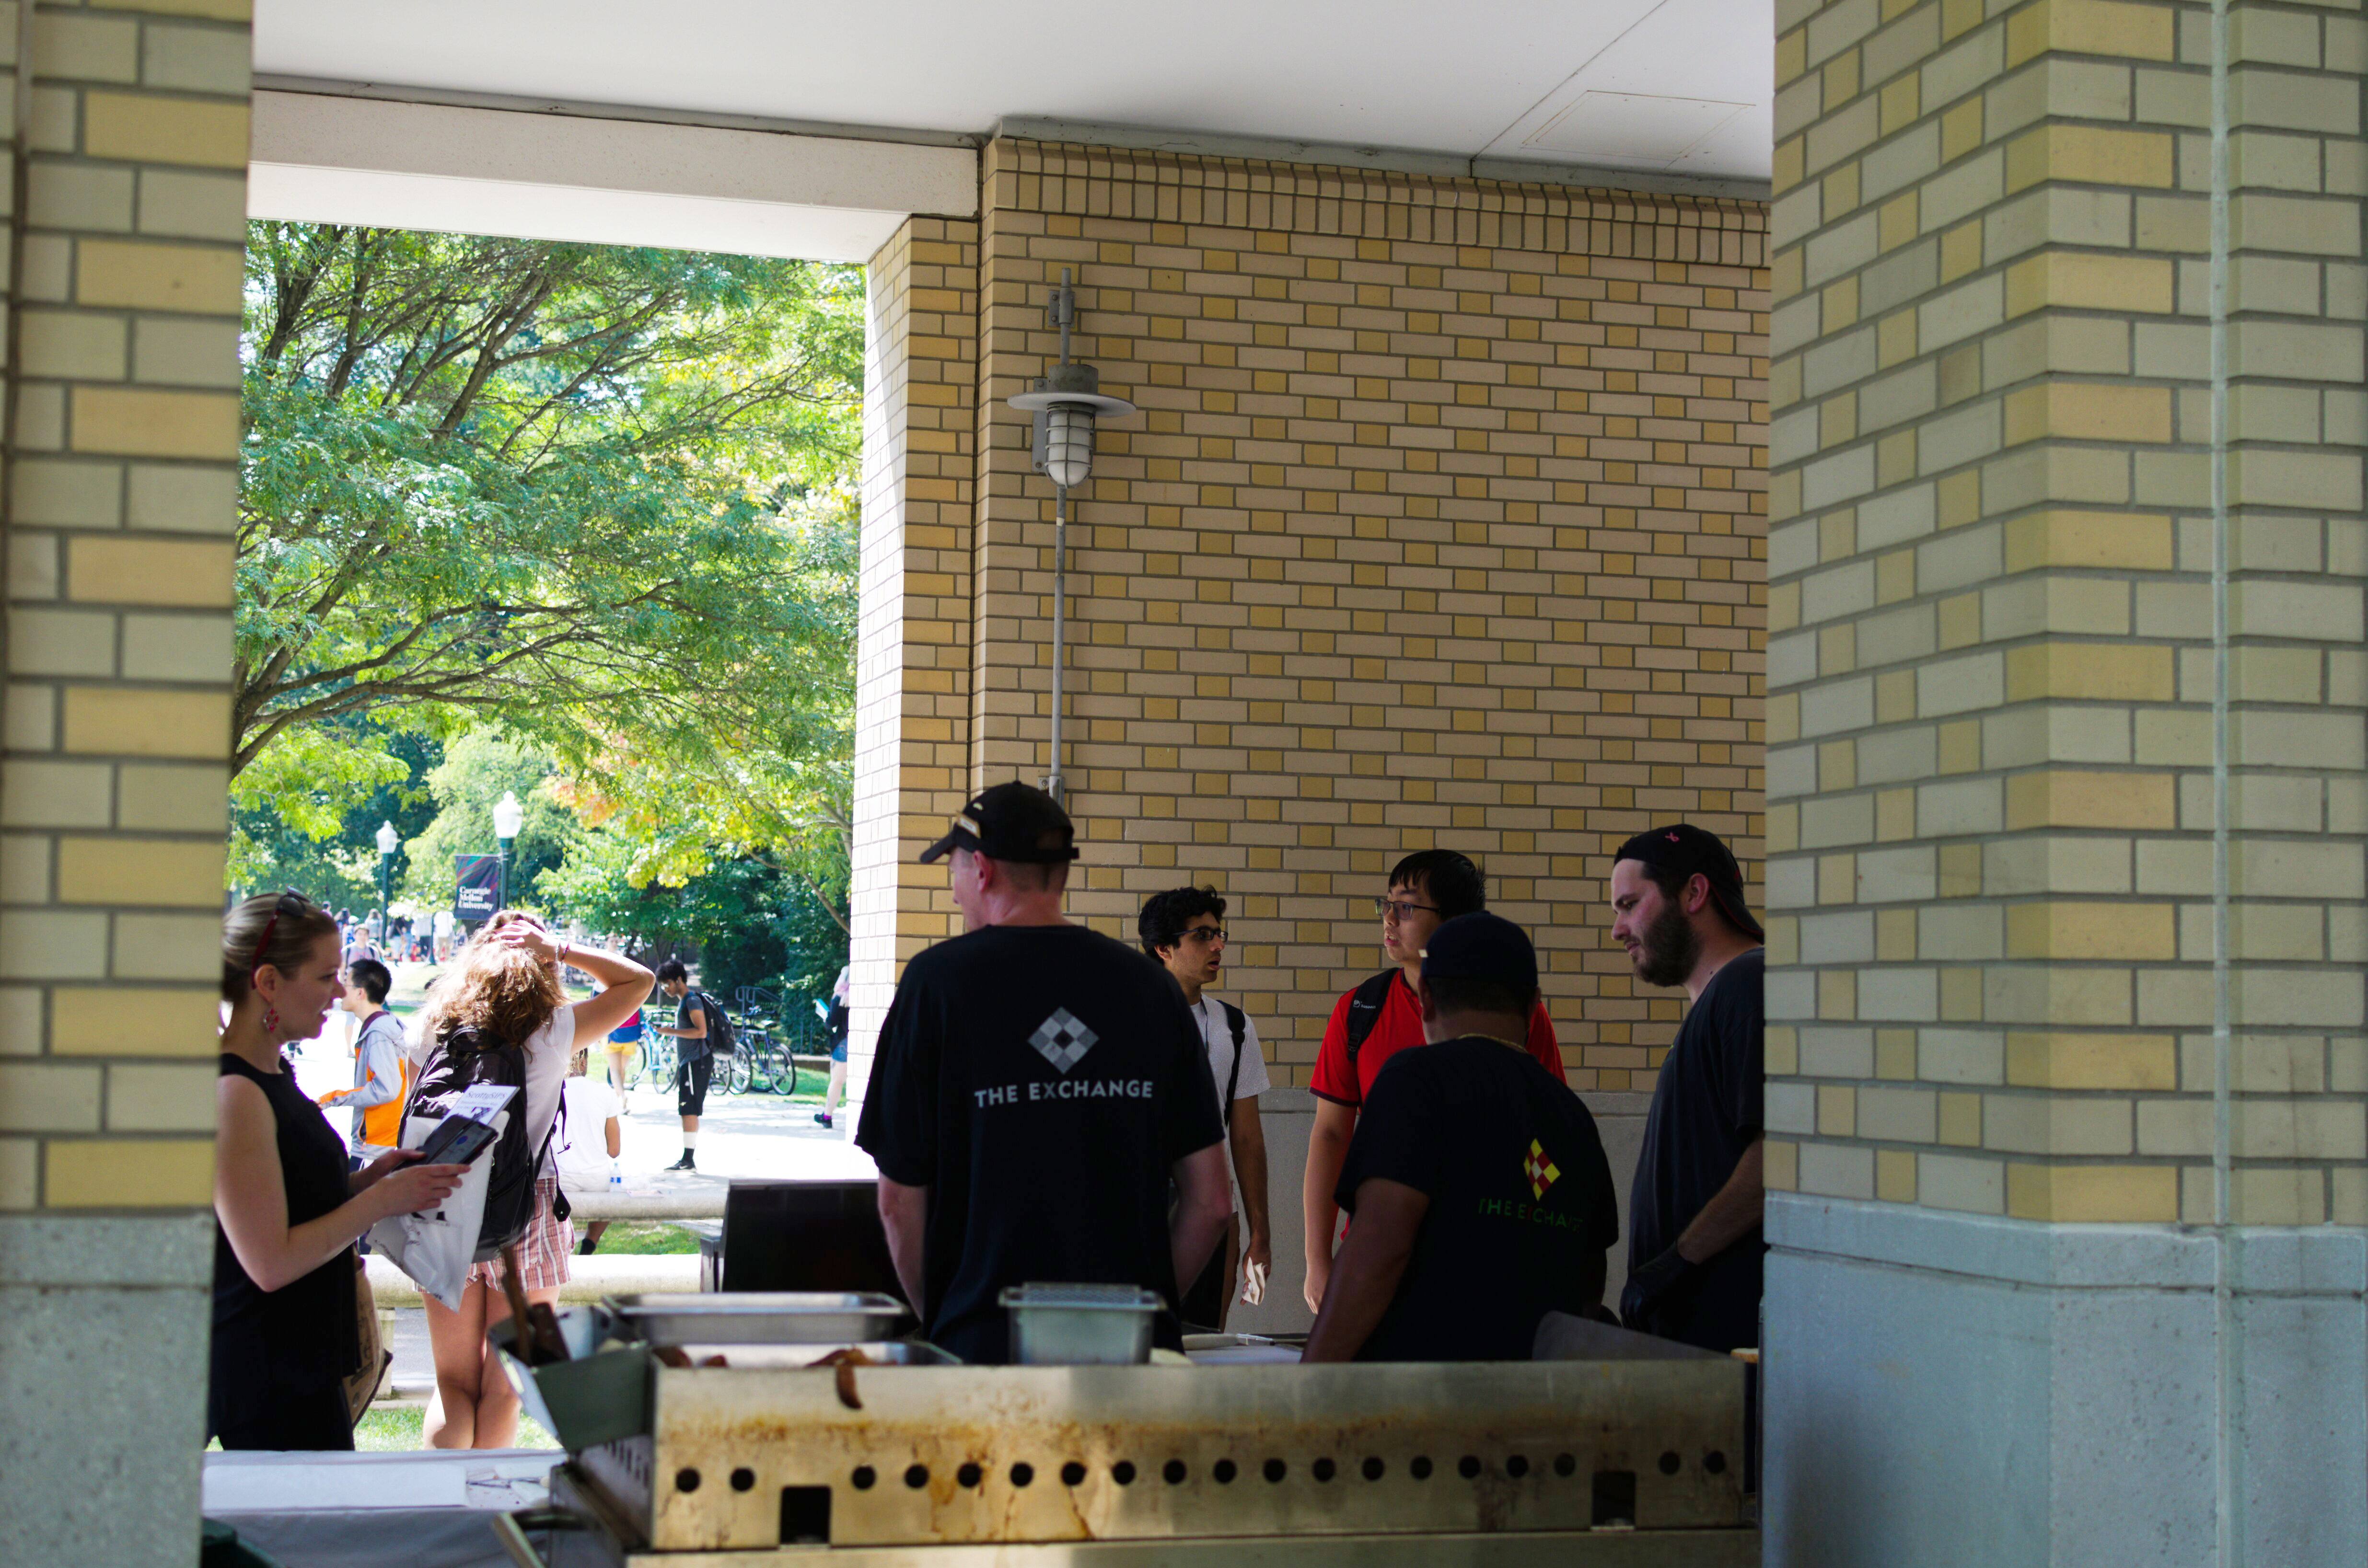 The new outdoor space will run until renovations in Posner Hall are completed.